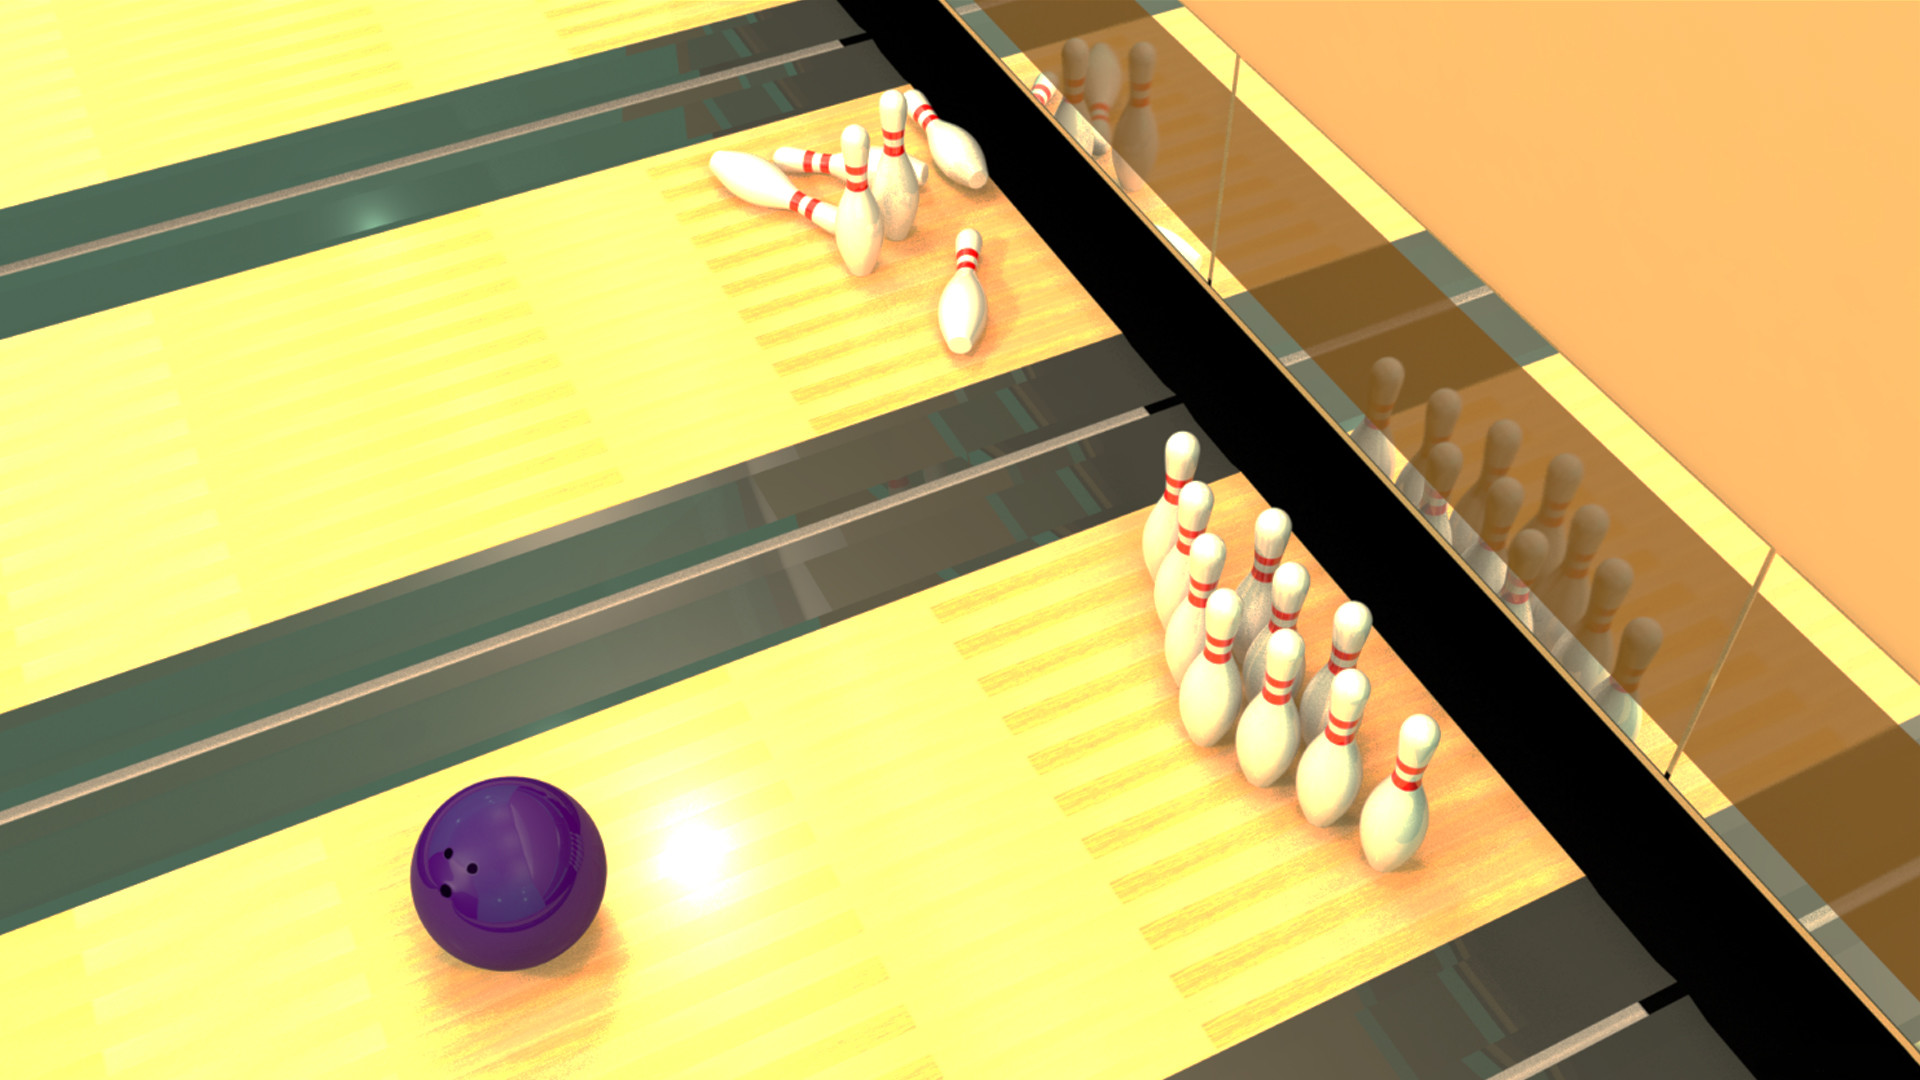 Rajesh sawant bowling alley6